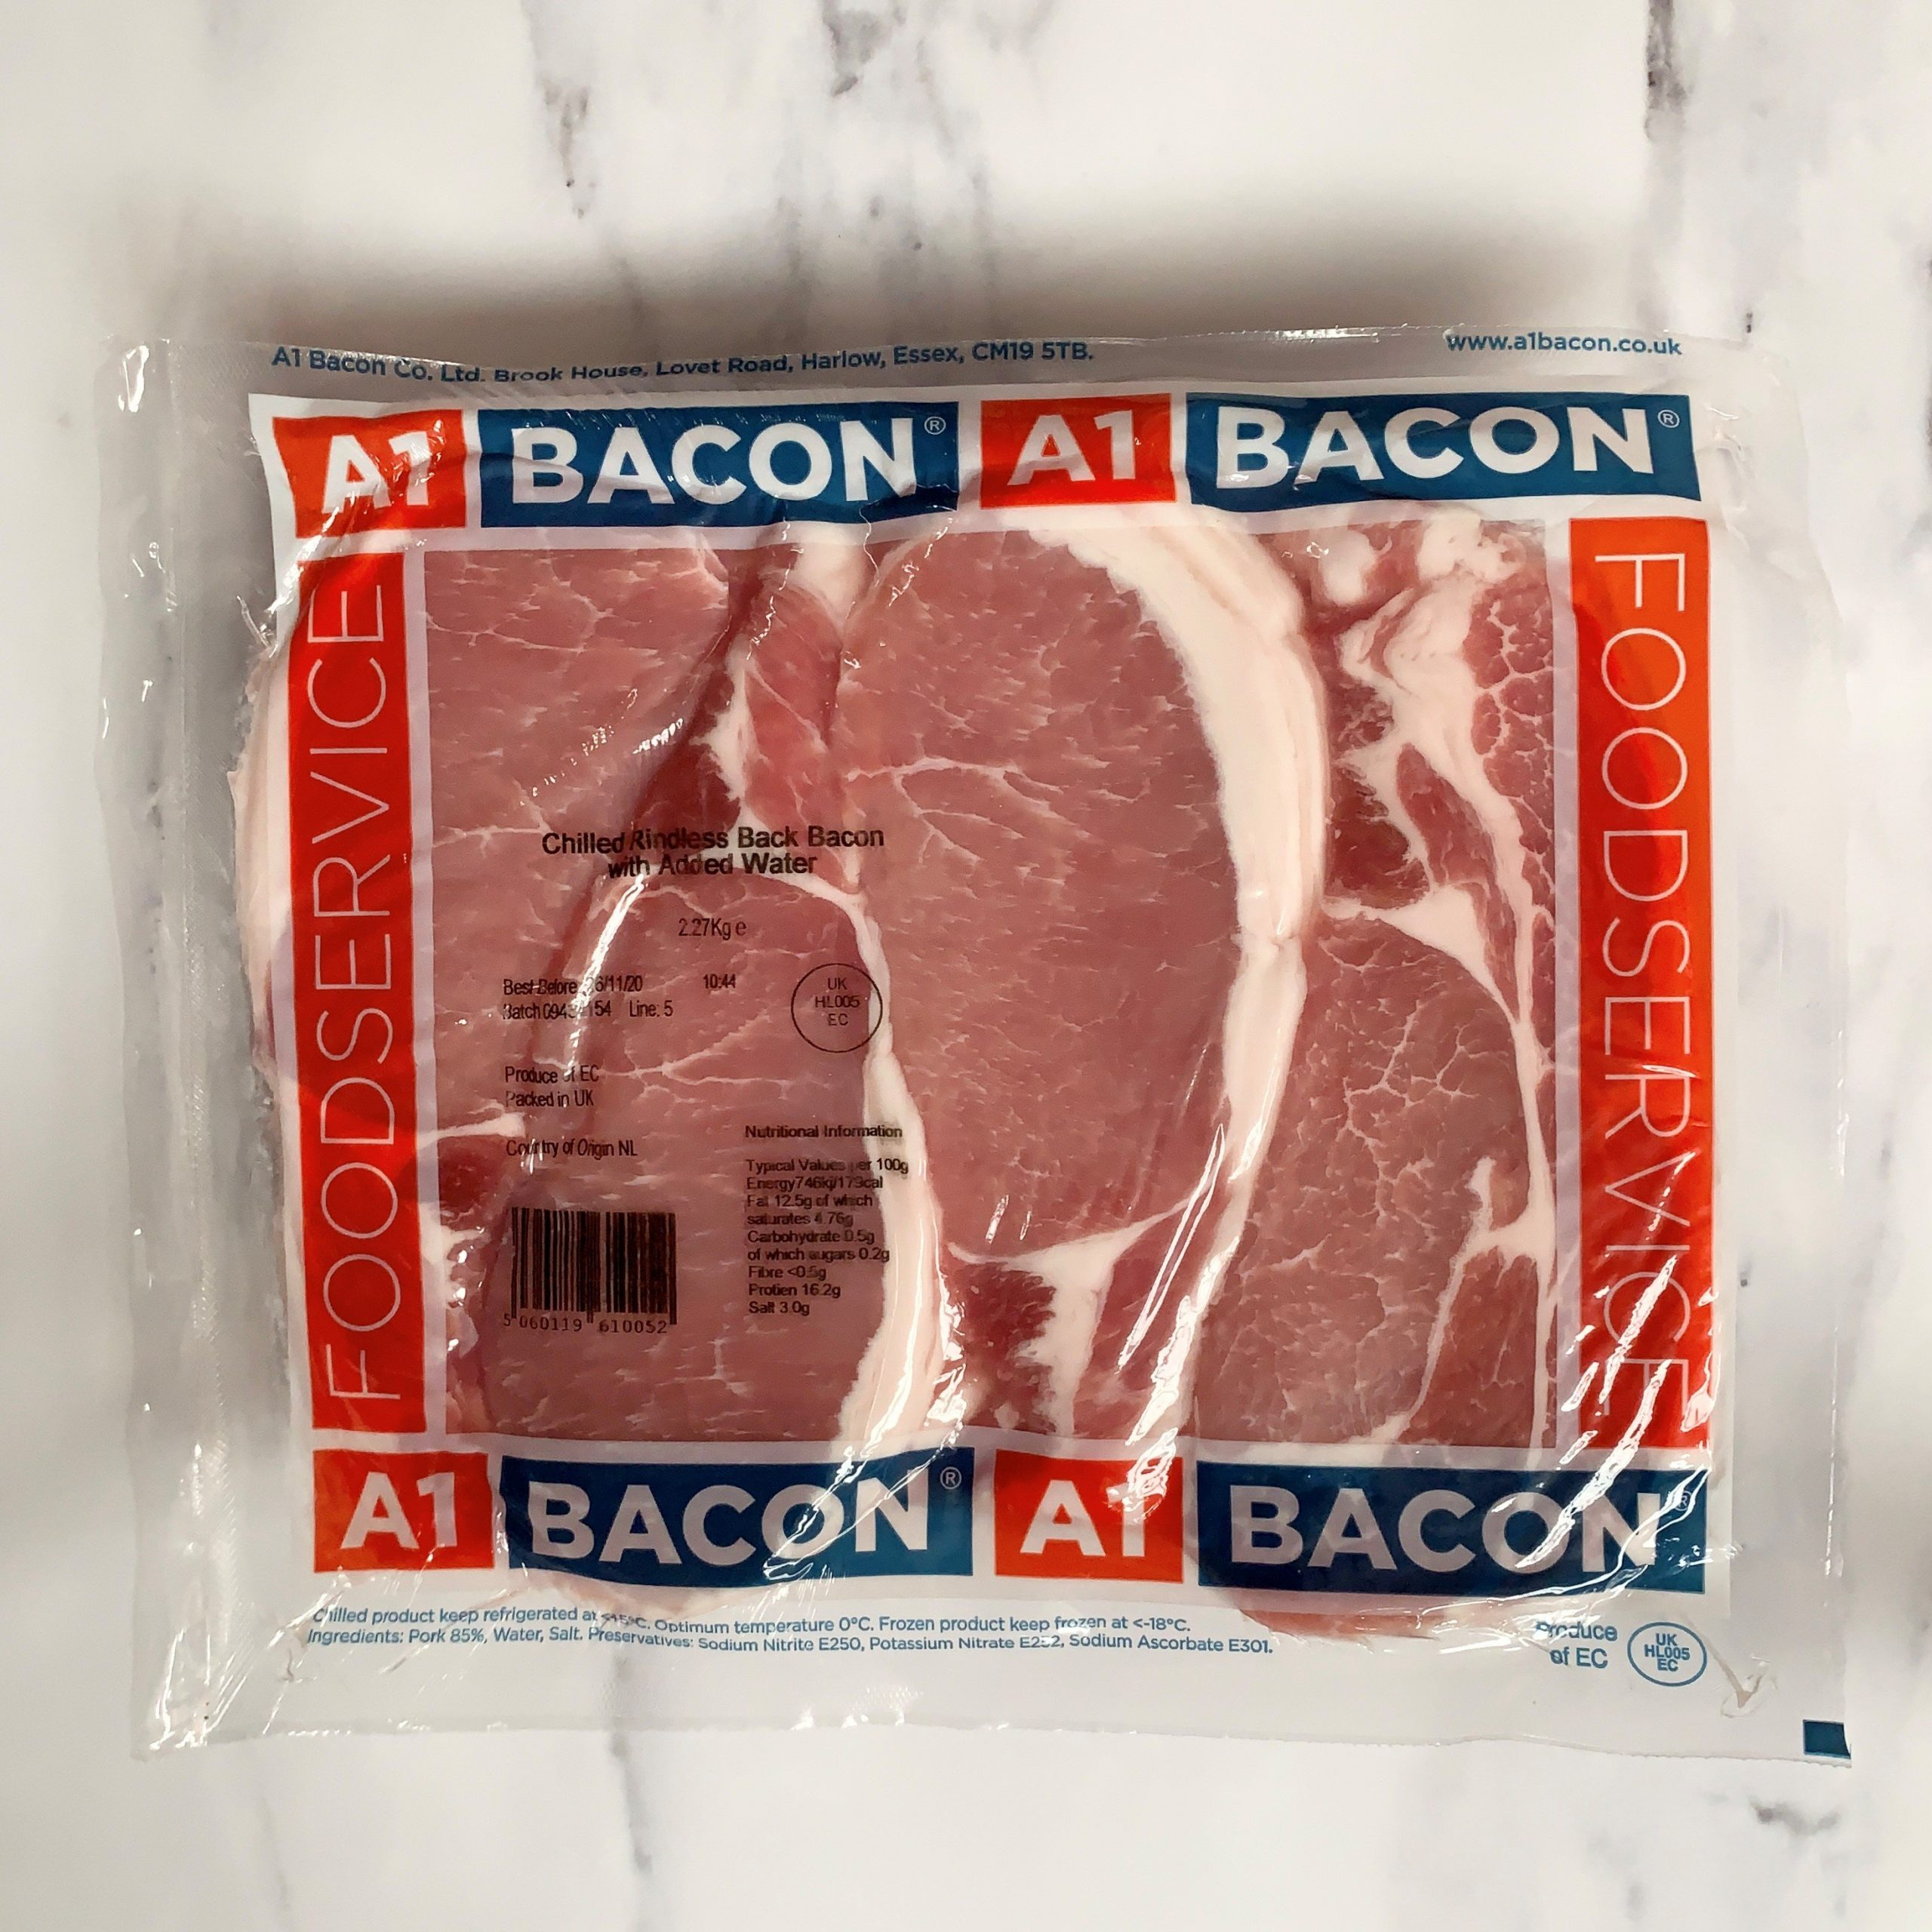 A1 Smoked Back Bacon – 2.27kg